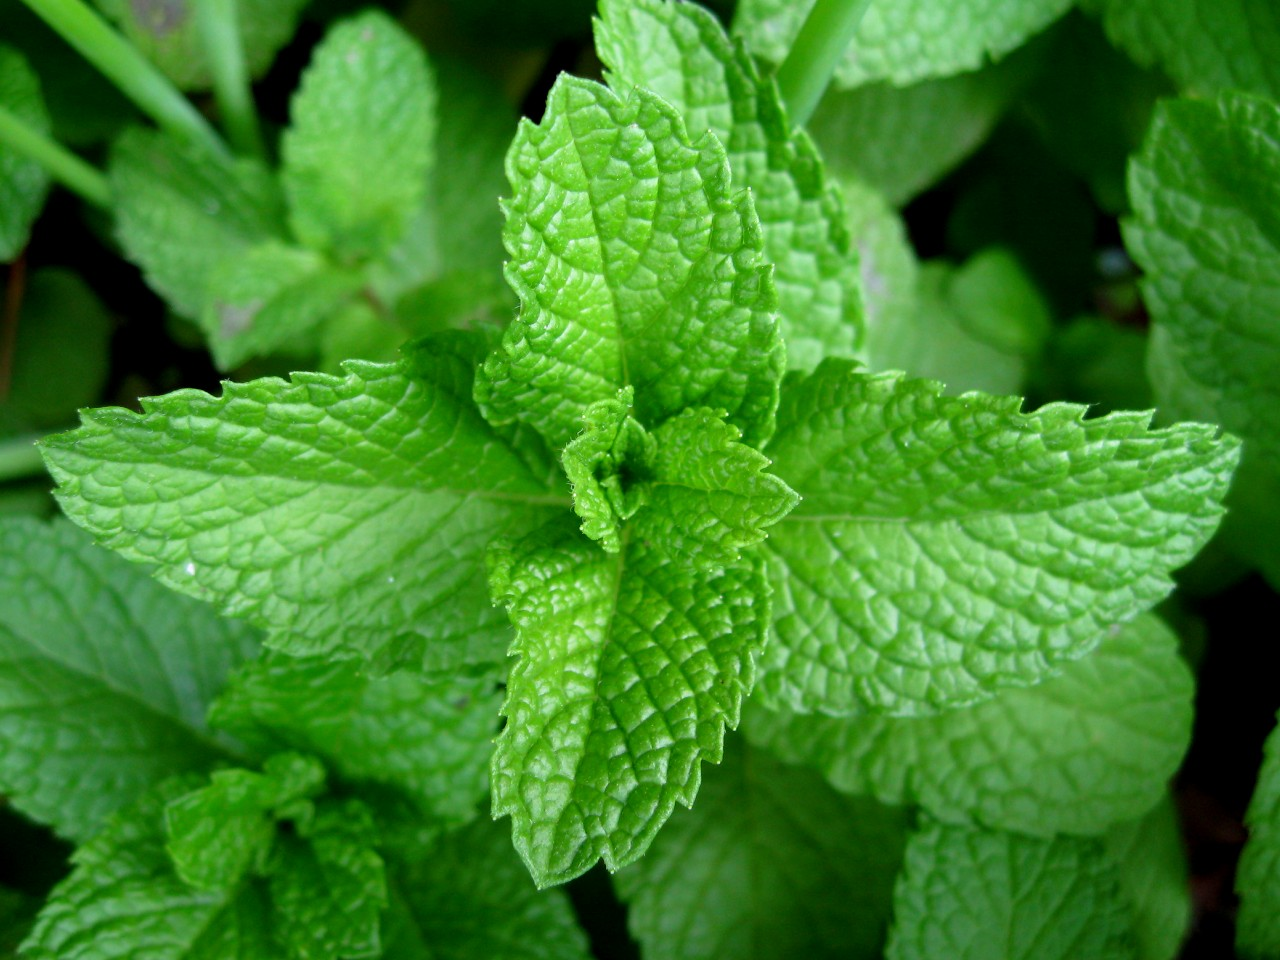 Peppermint was first described in 1753 by Carl Linnaeus from specimens that had been collected in England he treated it as a species but it is now universally